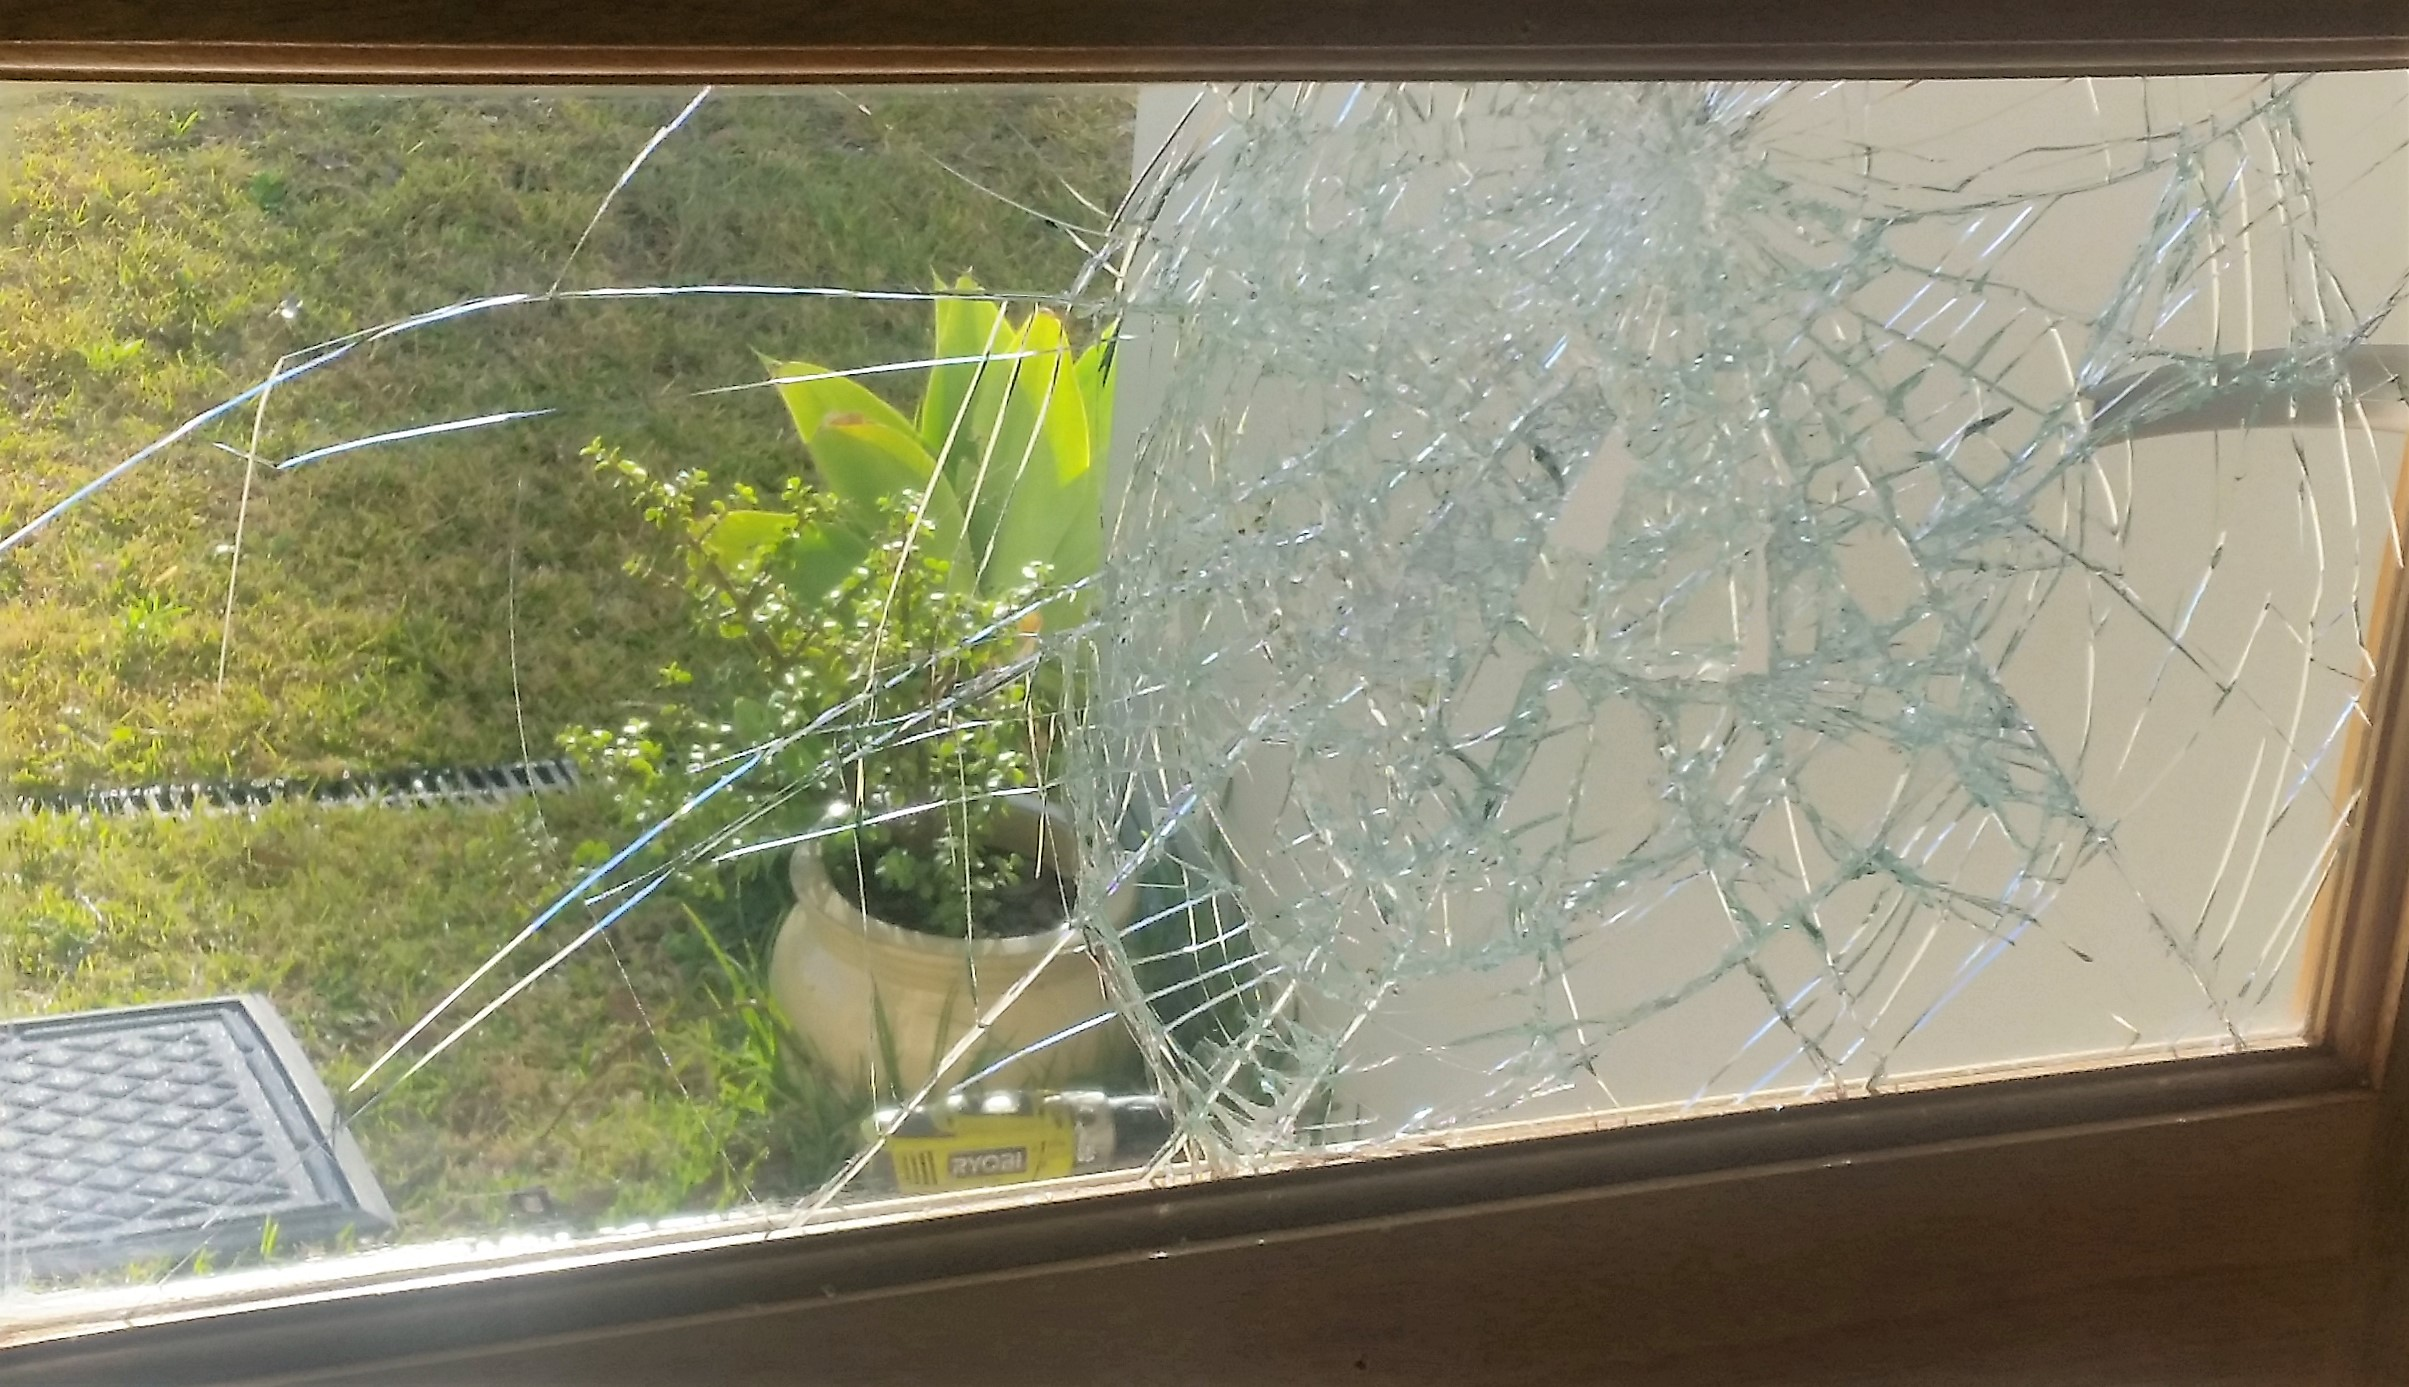 Glass Guru timber entry door glass replacement, call us now for a super price as we aim to beat any genuine quoted glass replacement for windows & door glass repair.